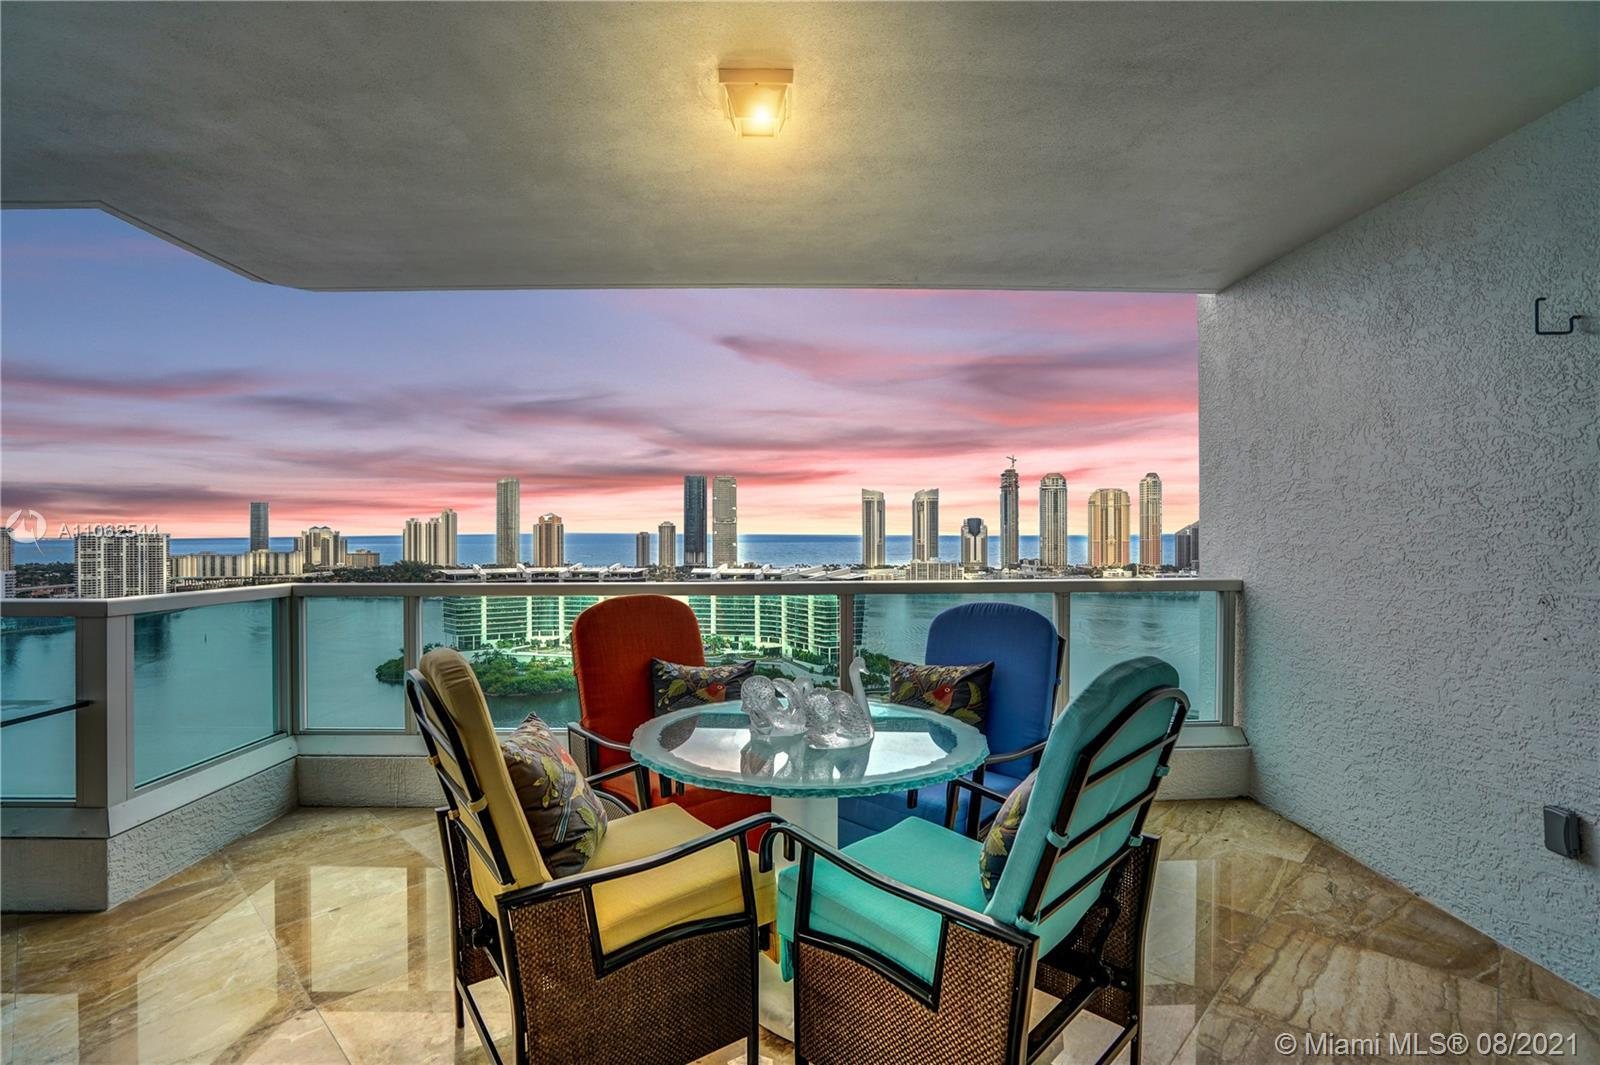 Welcome to your Palazzo in the sky ! State-of-the-art Tower Suite in the exclusive Peninsula I is wa